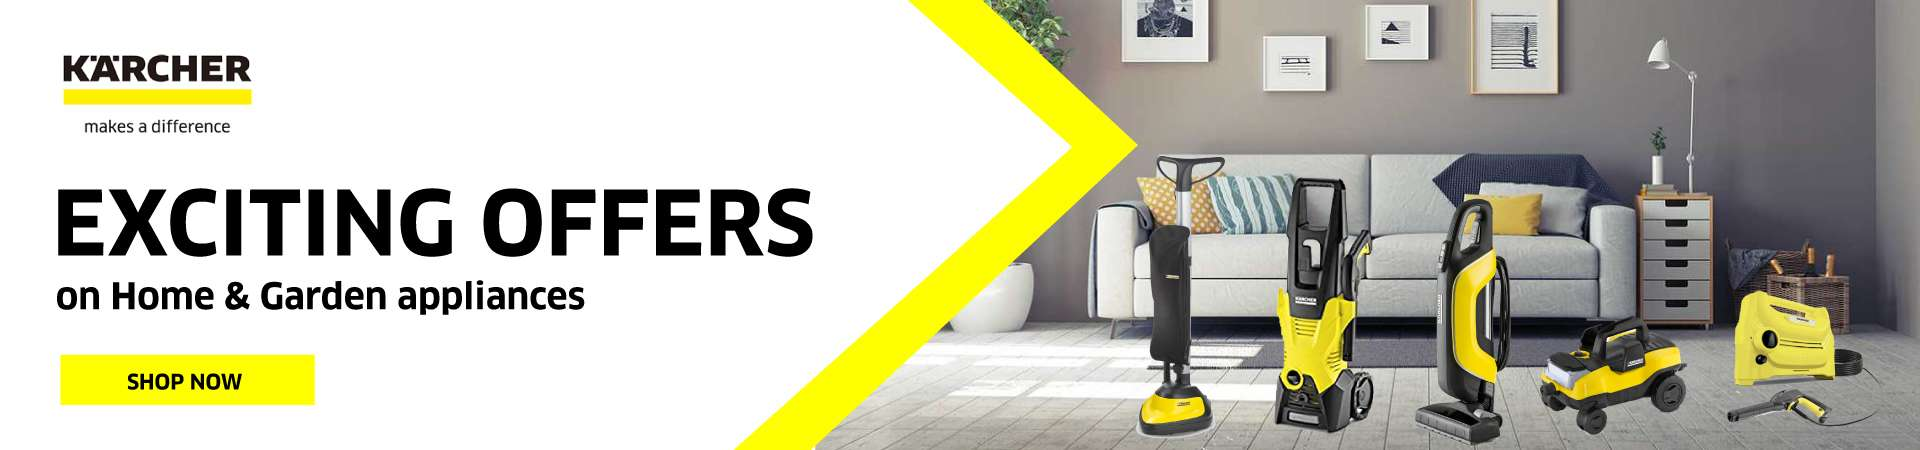 Karcher Offers 2020